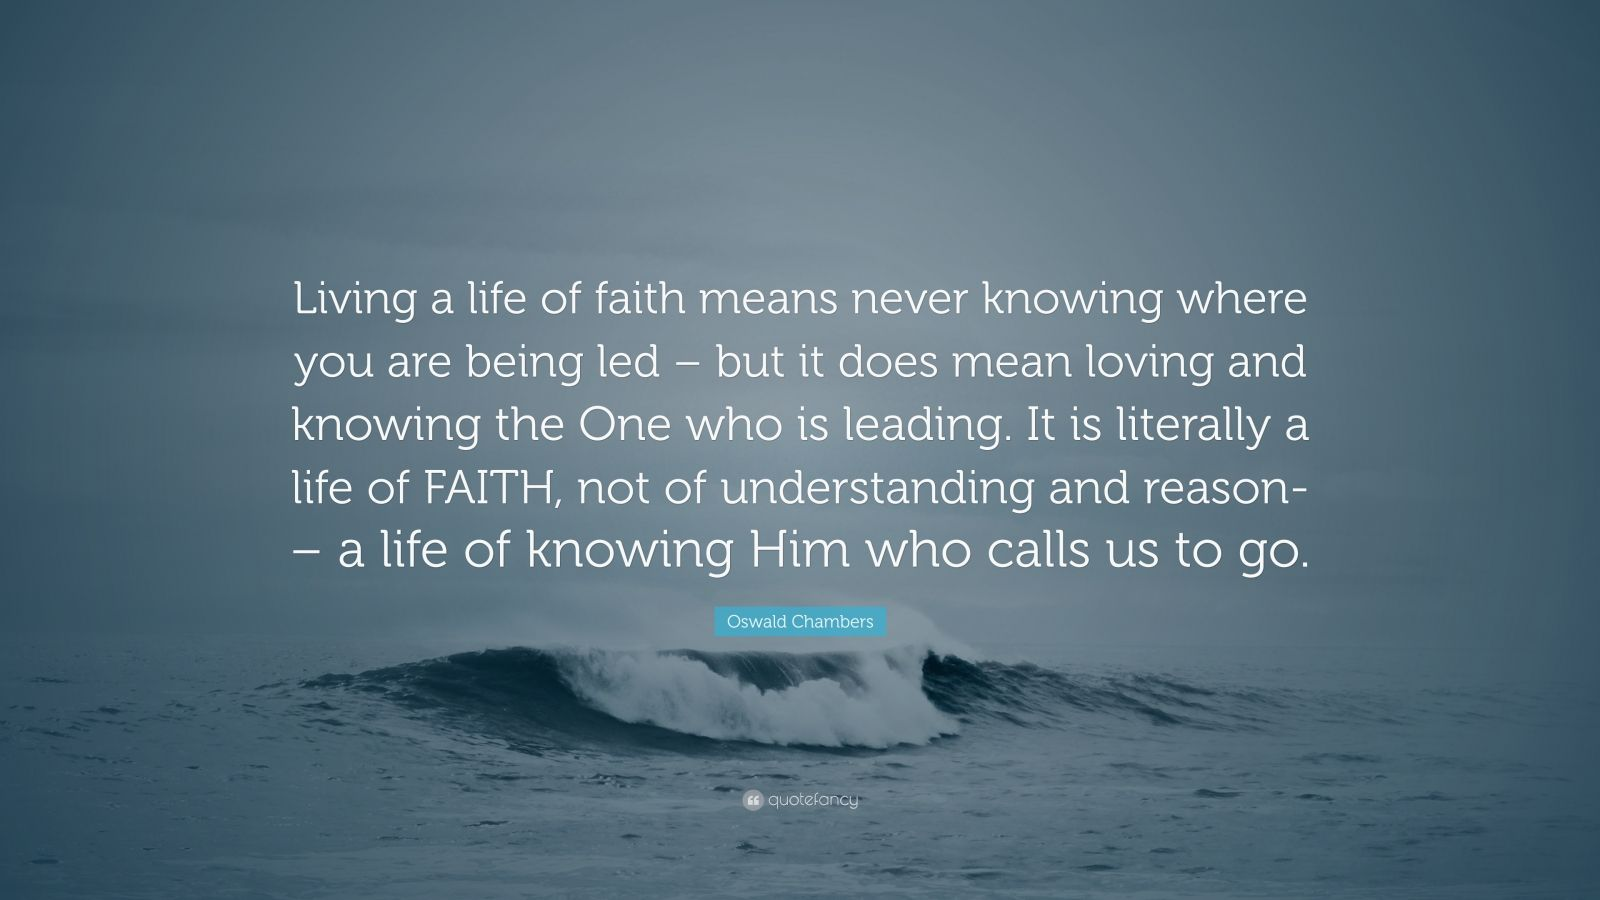 """Oswald Chambers Quote: """"Living a life of faith means never knowing where you are being led – but it does mean loving and knowing the One who is leading. It is literally a life of FAITH, not of understanding and reason- – a life of knowing Him who calls us to go."""""""